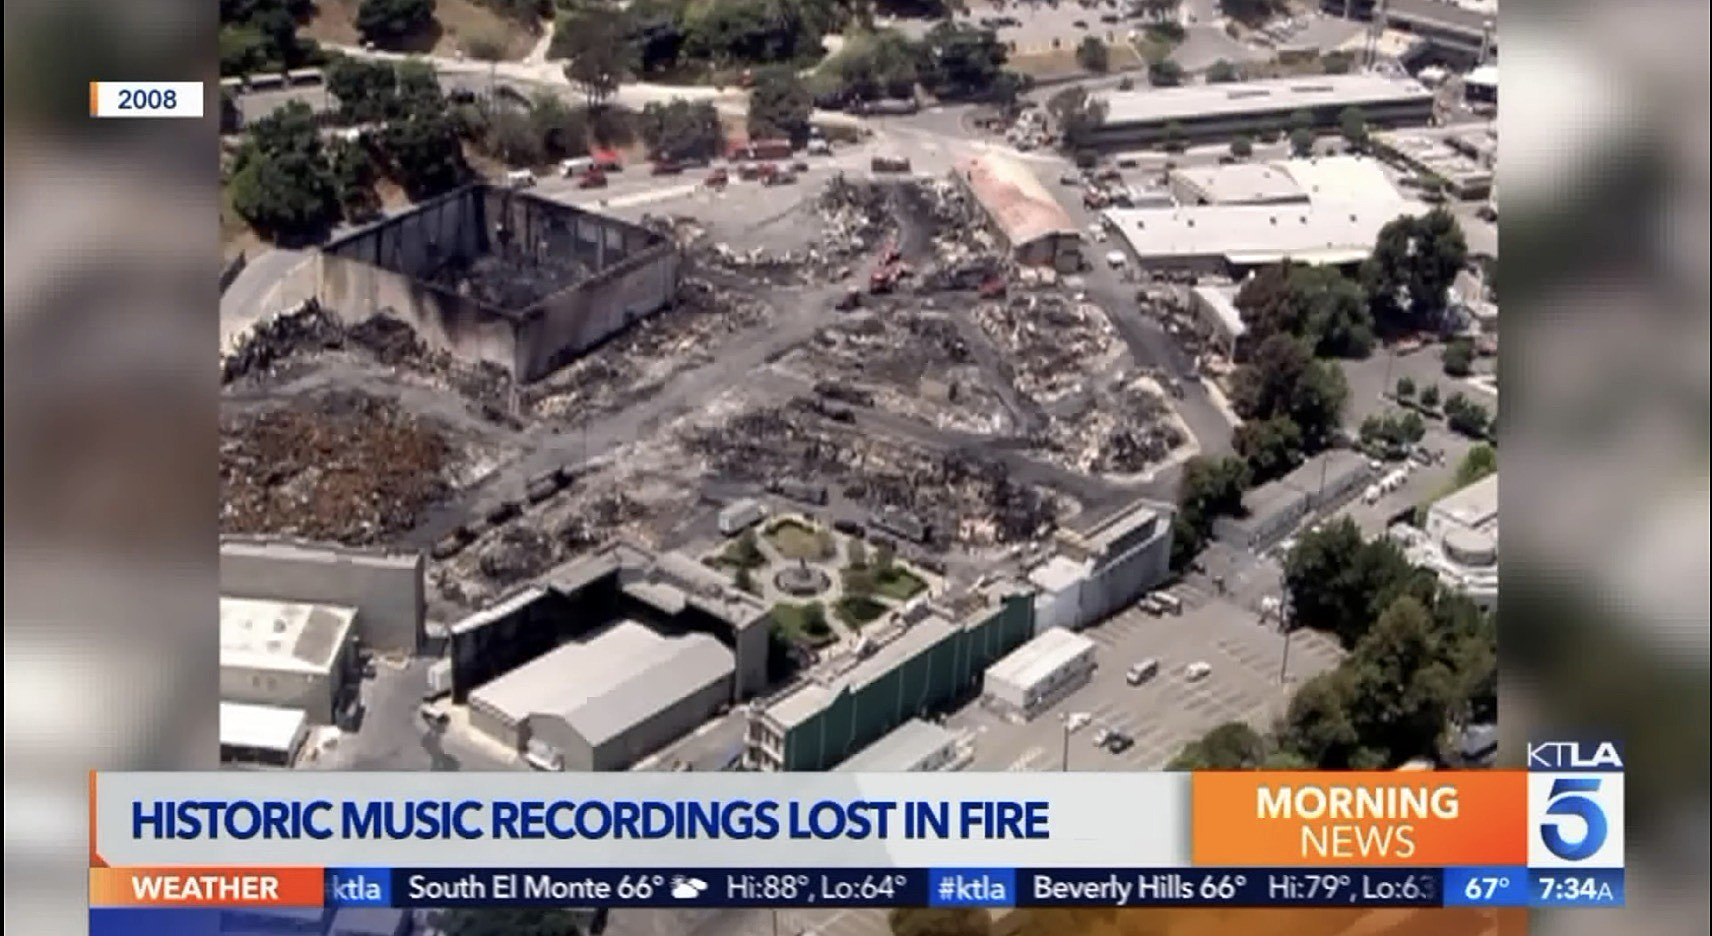 KTLA reporting on the fire